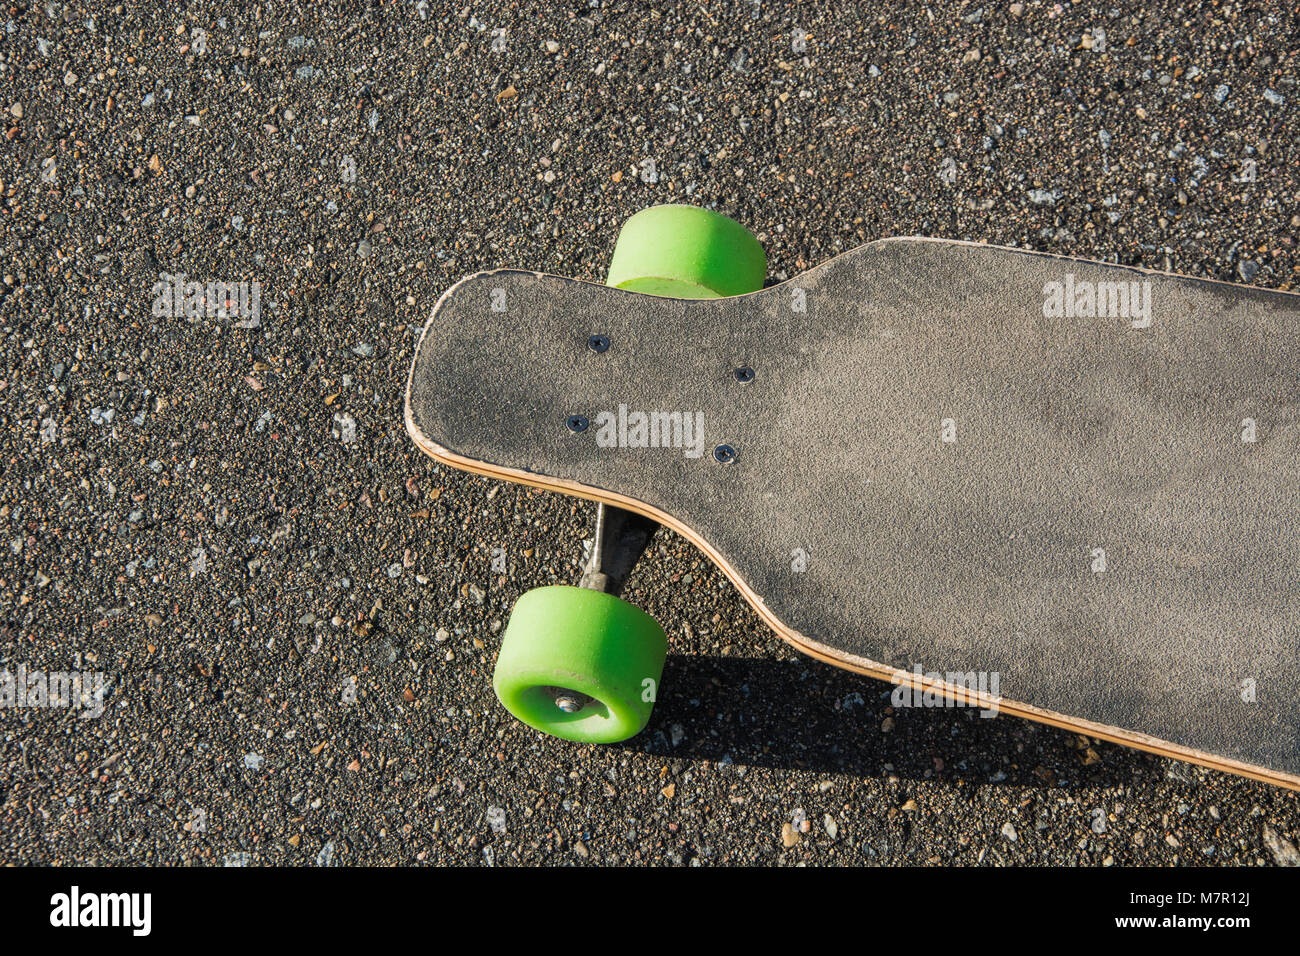 a3242e0187 Old used longboard isolated on the ground. Black skateboard on an empty  asphalt road. Close up.